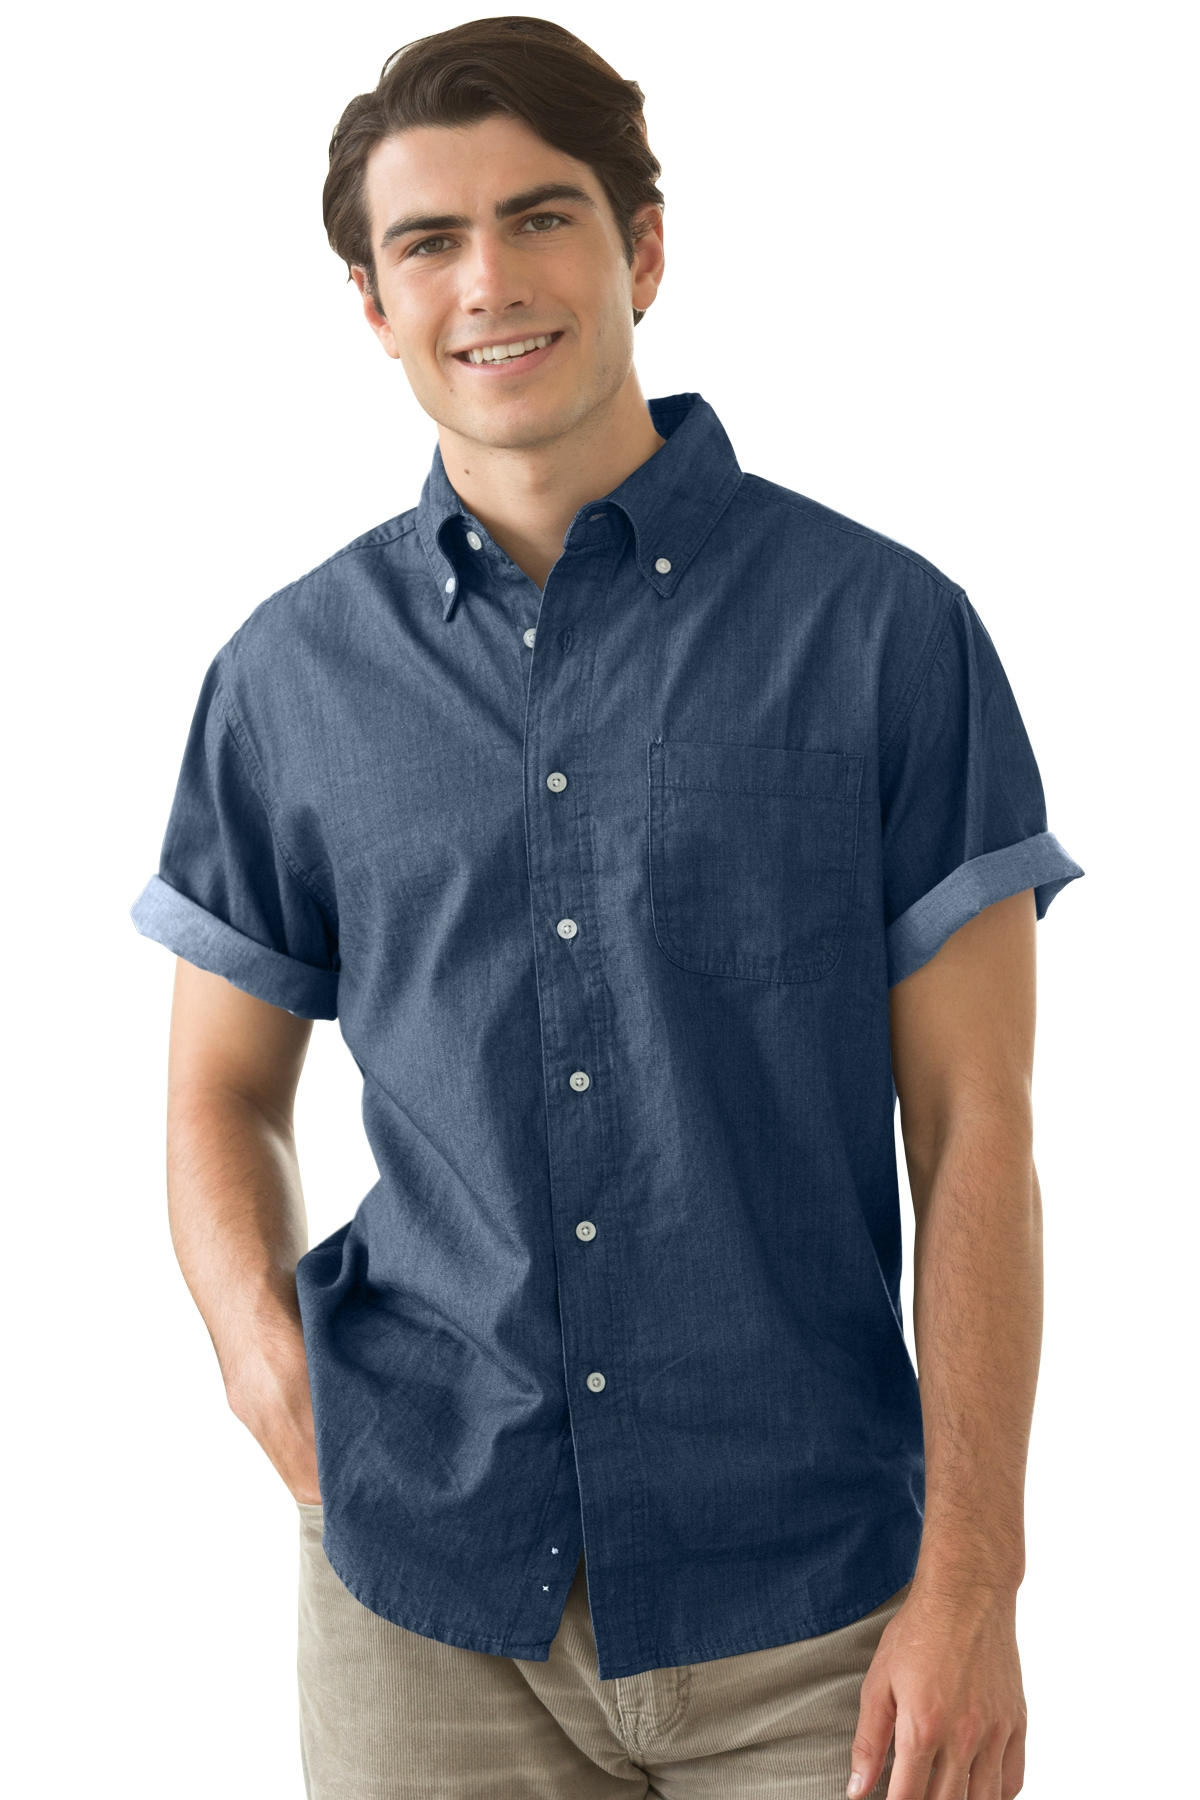 db73c1a3137 Vantage 1977S - Men s Short-Sleeve Hudson Denim Shirt